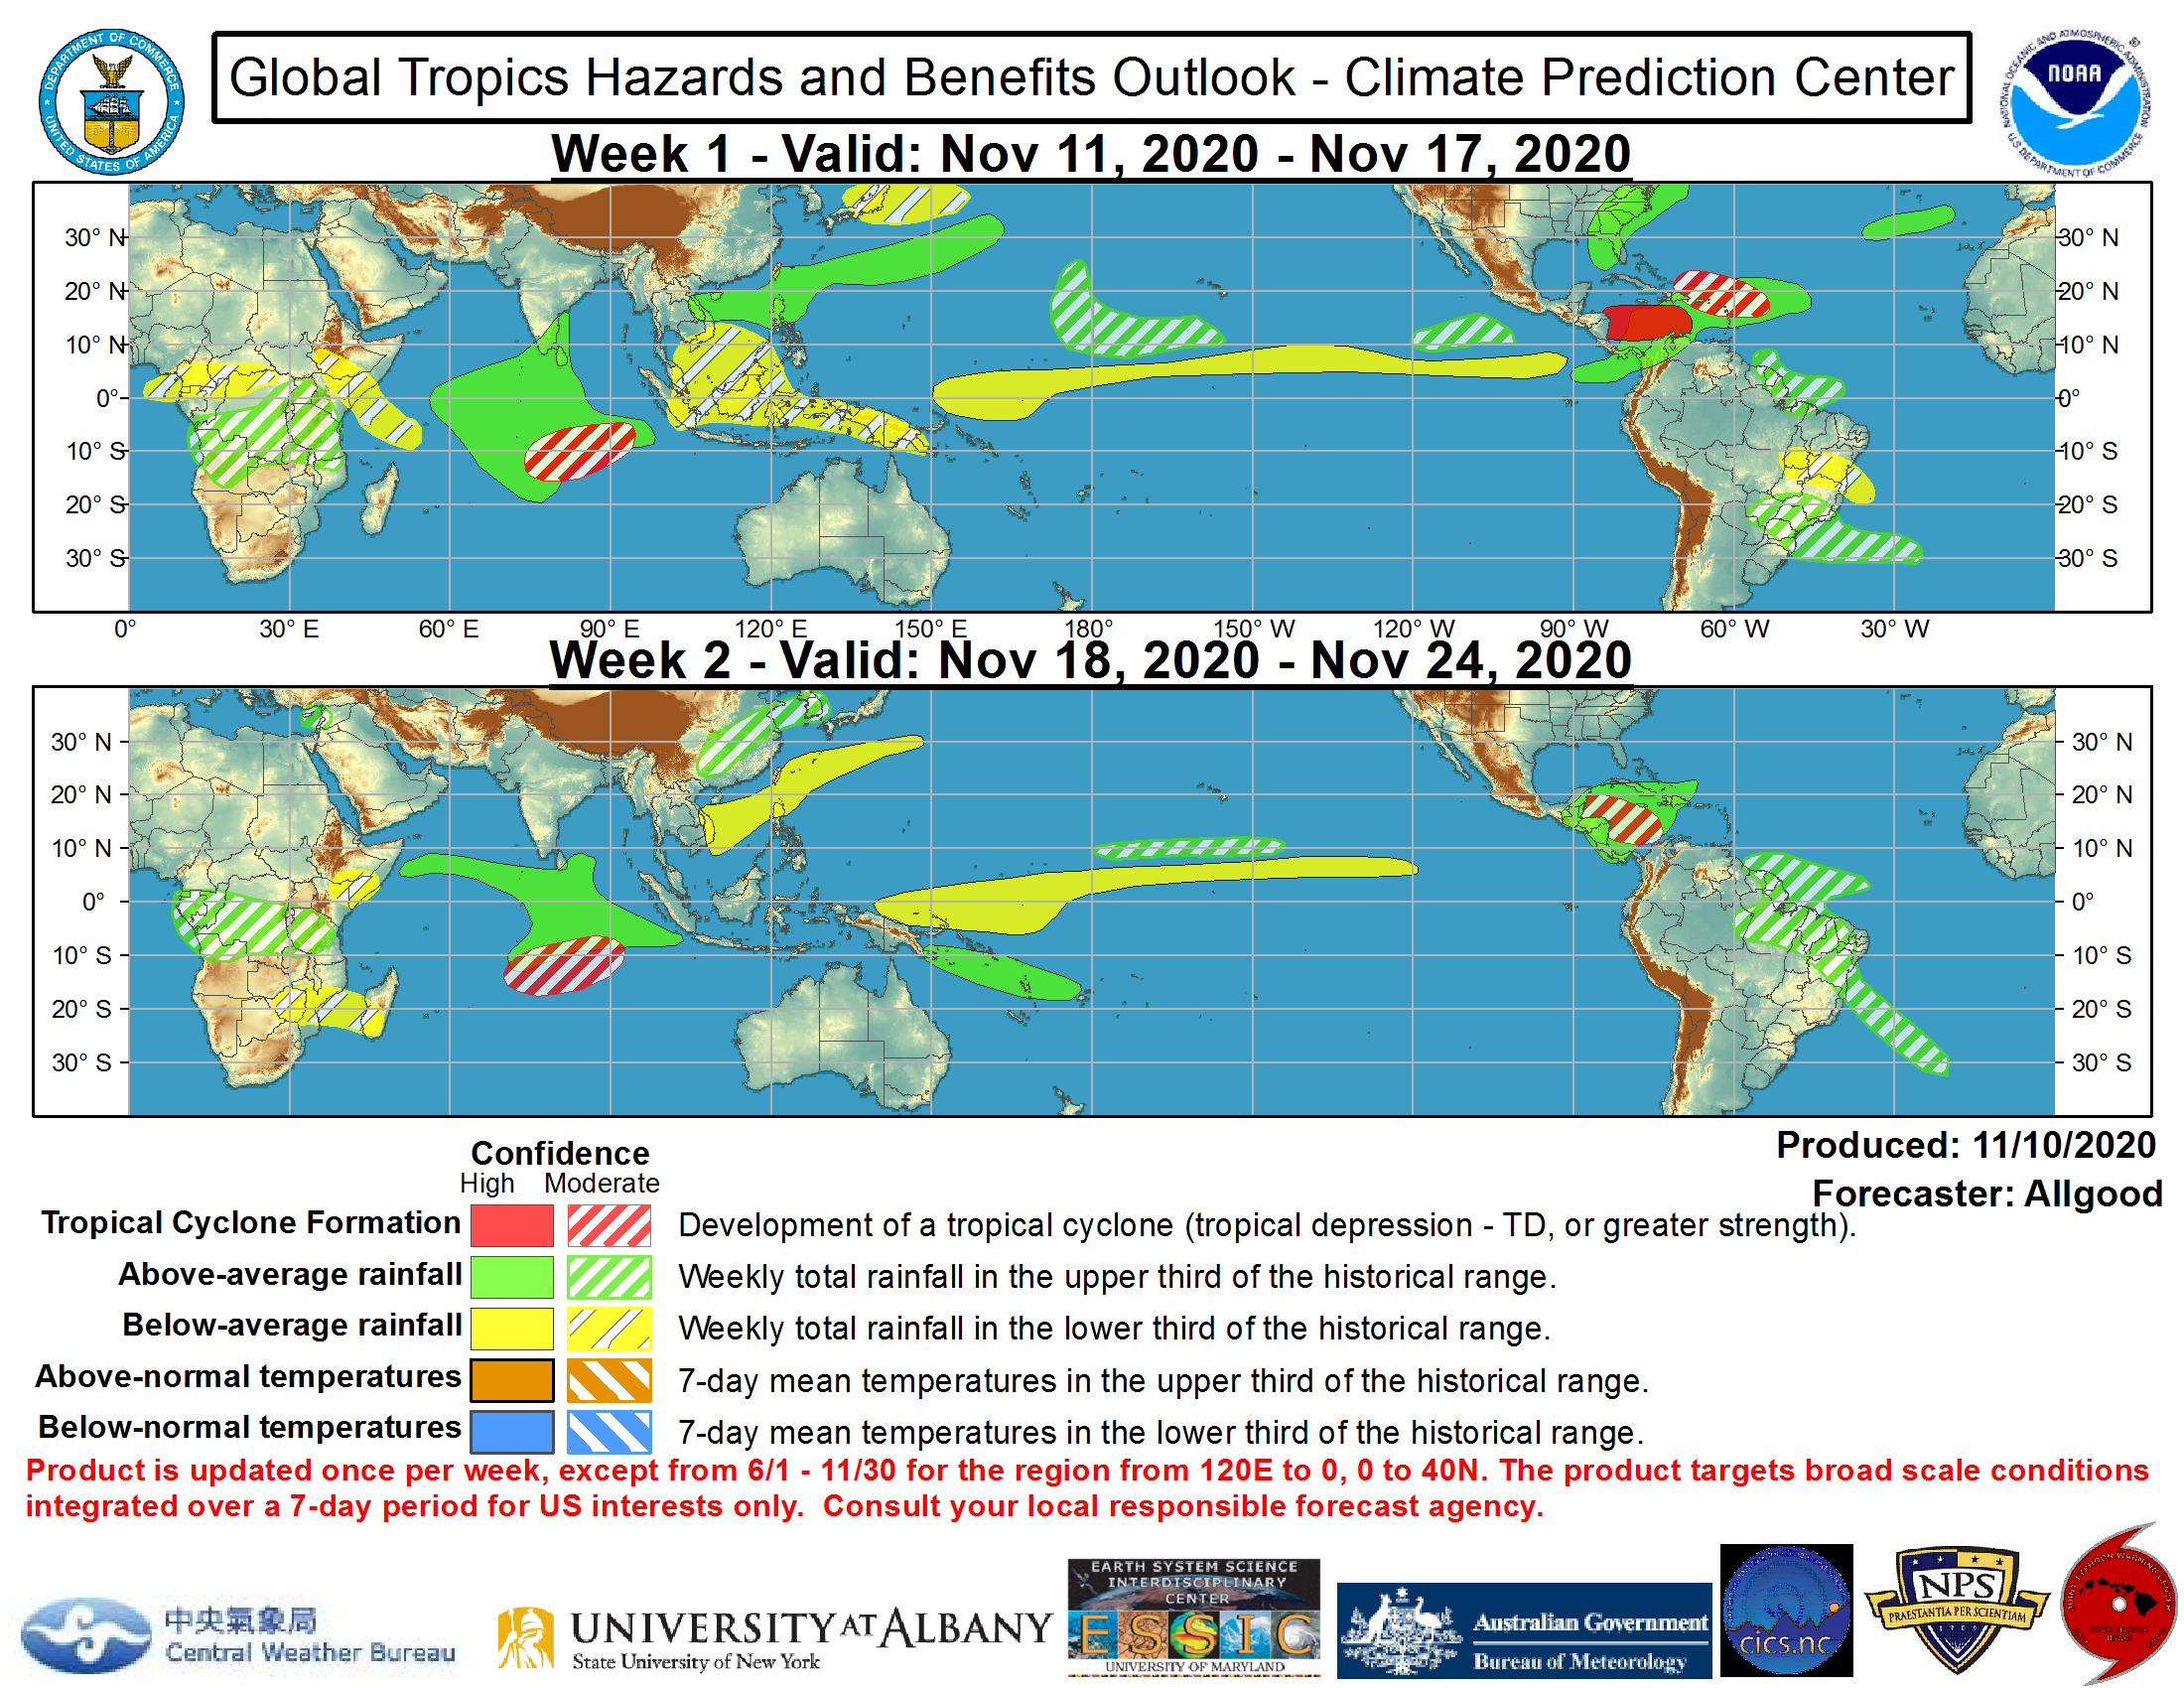 US National Weather Service Prediction Outlook